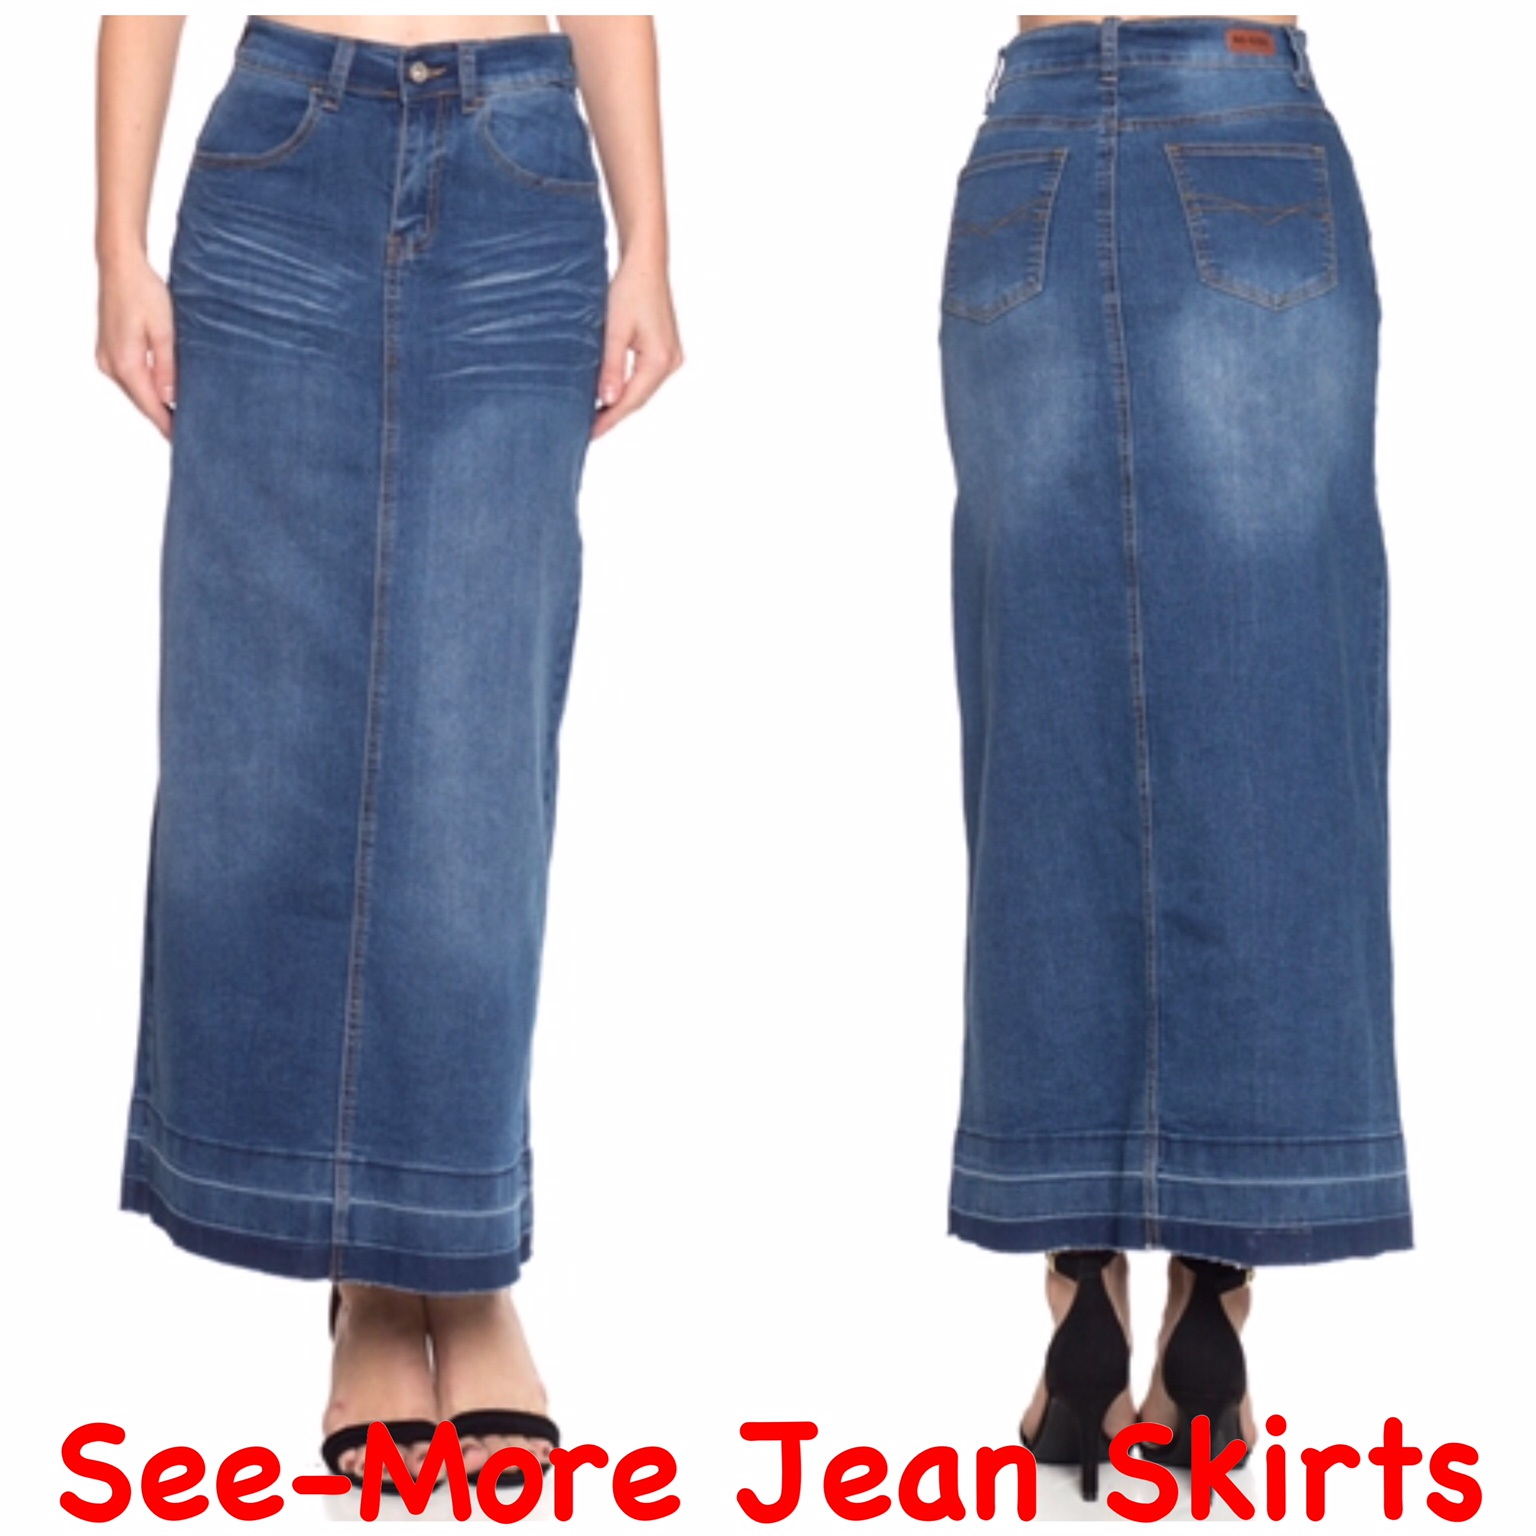 4277cc4524 SHILOH LONG FADED WASH DENIM JEAN SKIRT · See-More Jean Skirts ...